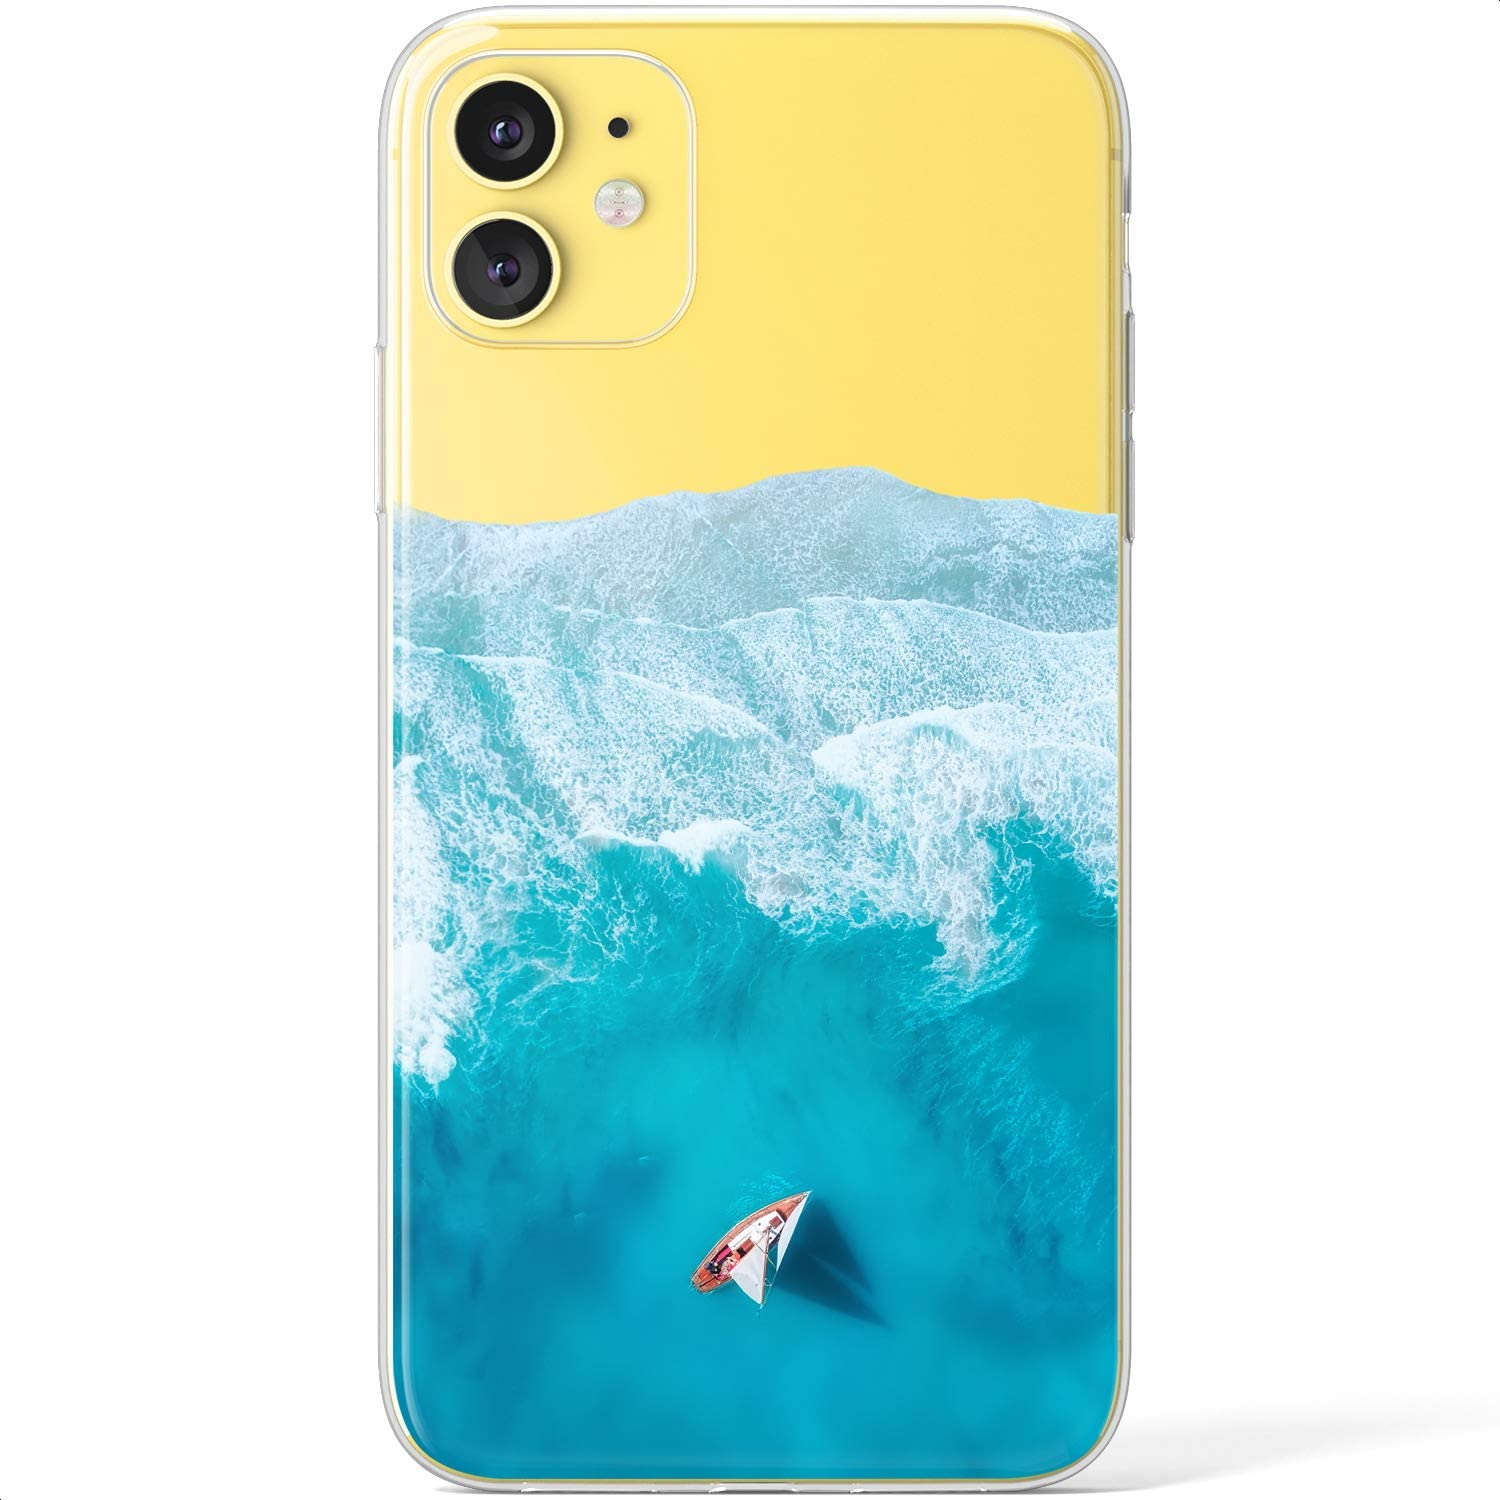 Mertak Clear Case Compatible with iPhone 12 Pro Max Mini 11 SE 10 Xr Xs 8 Plus 7 6s 5s Flexible Cover Protective Sailboat Beach Sea TPU Design Tides Slim Blue Ocean Blue Silicone Lightweight